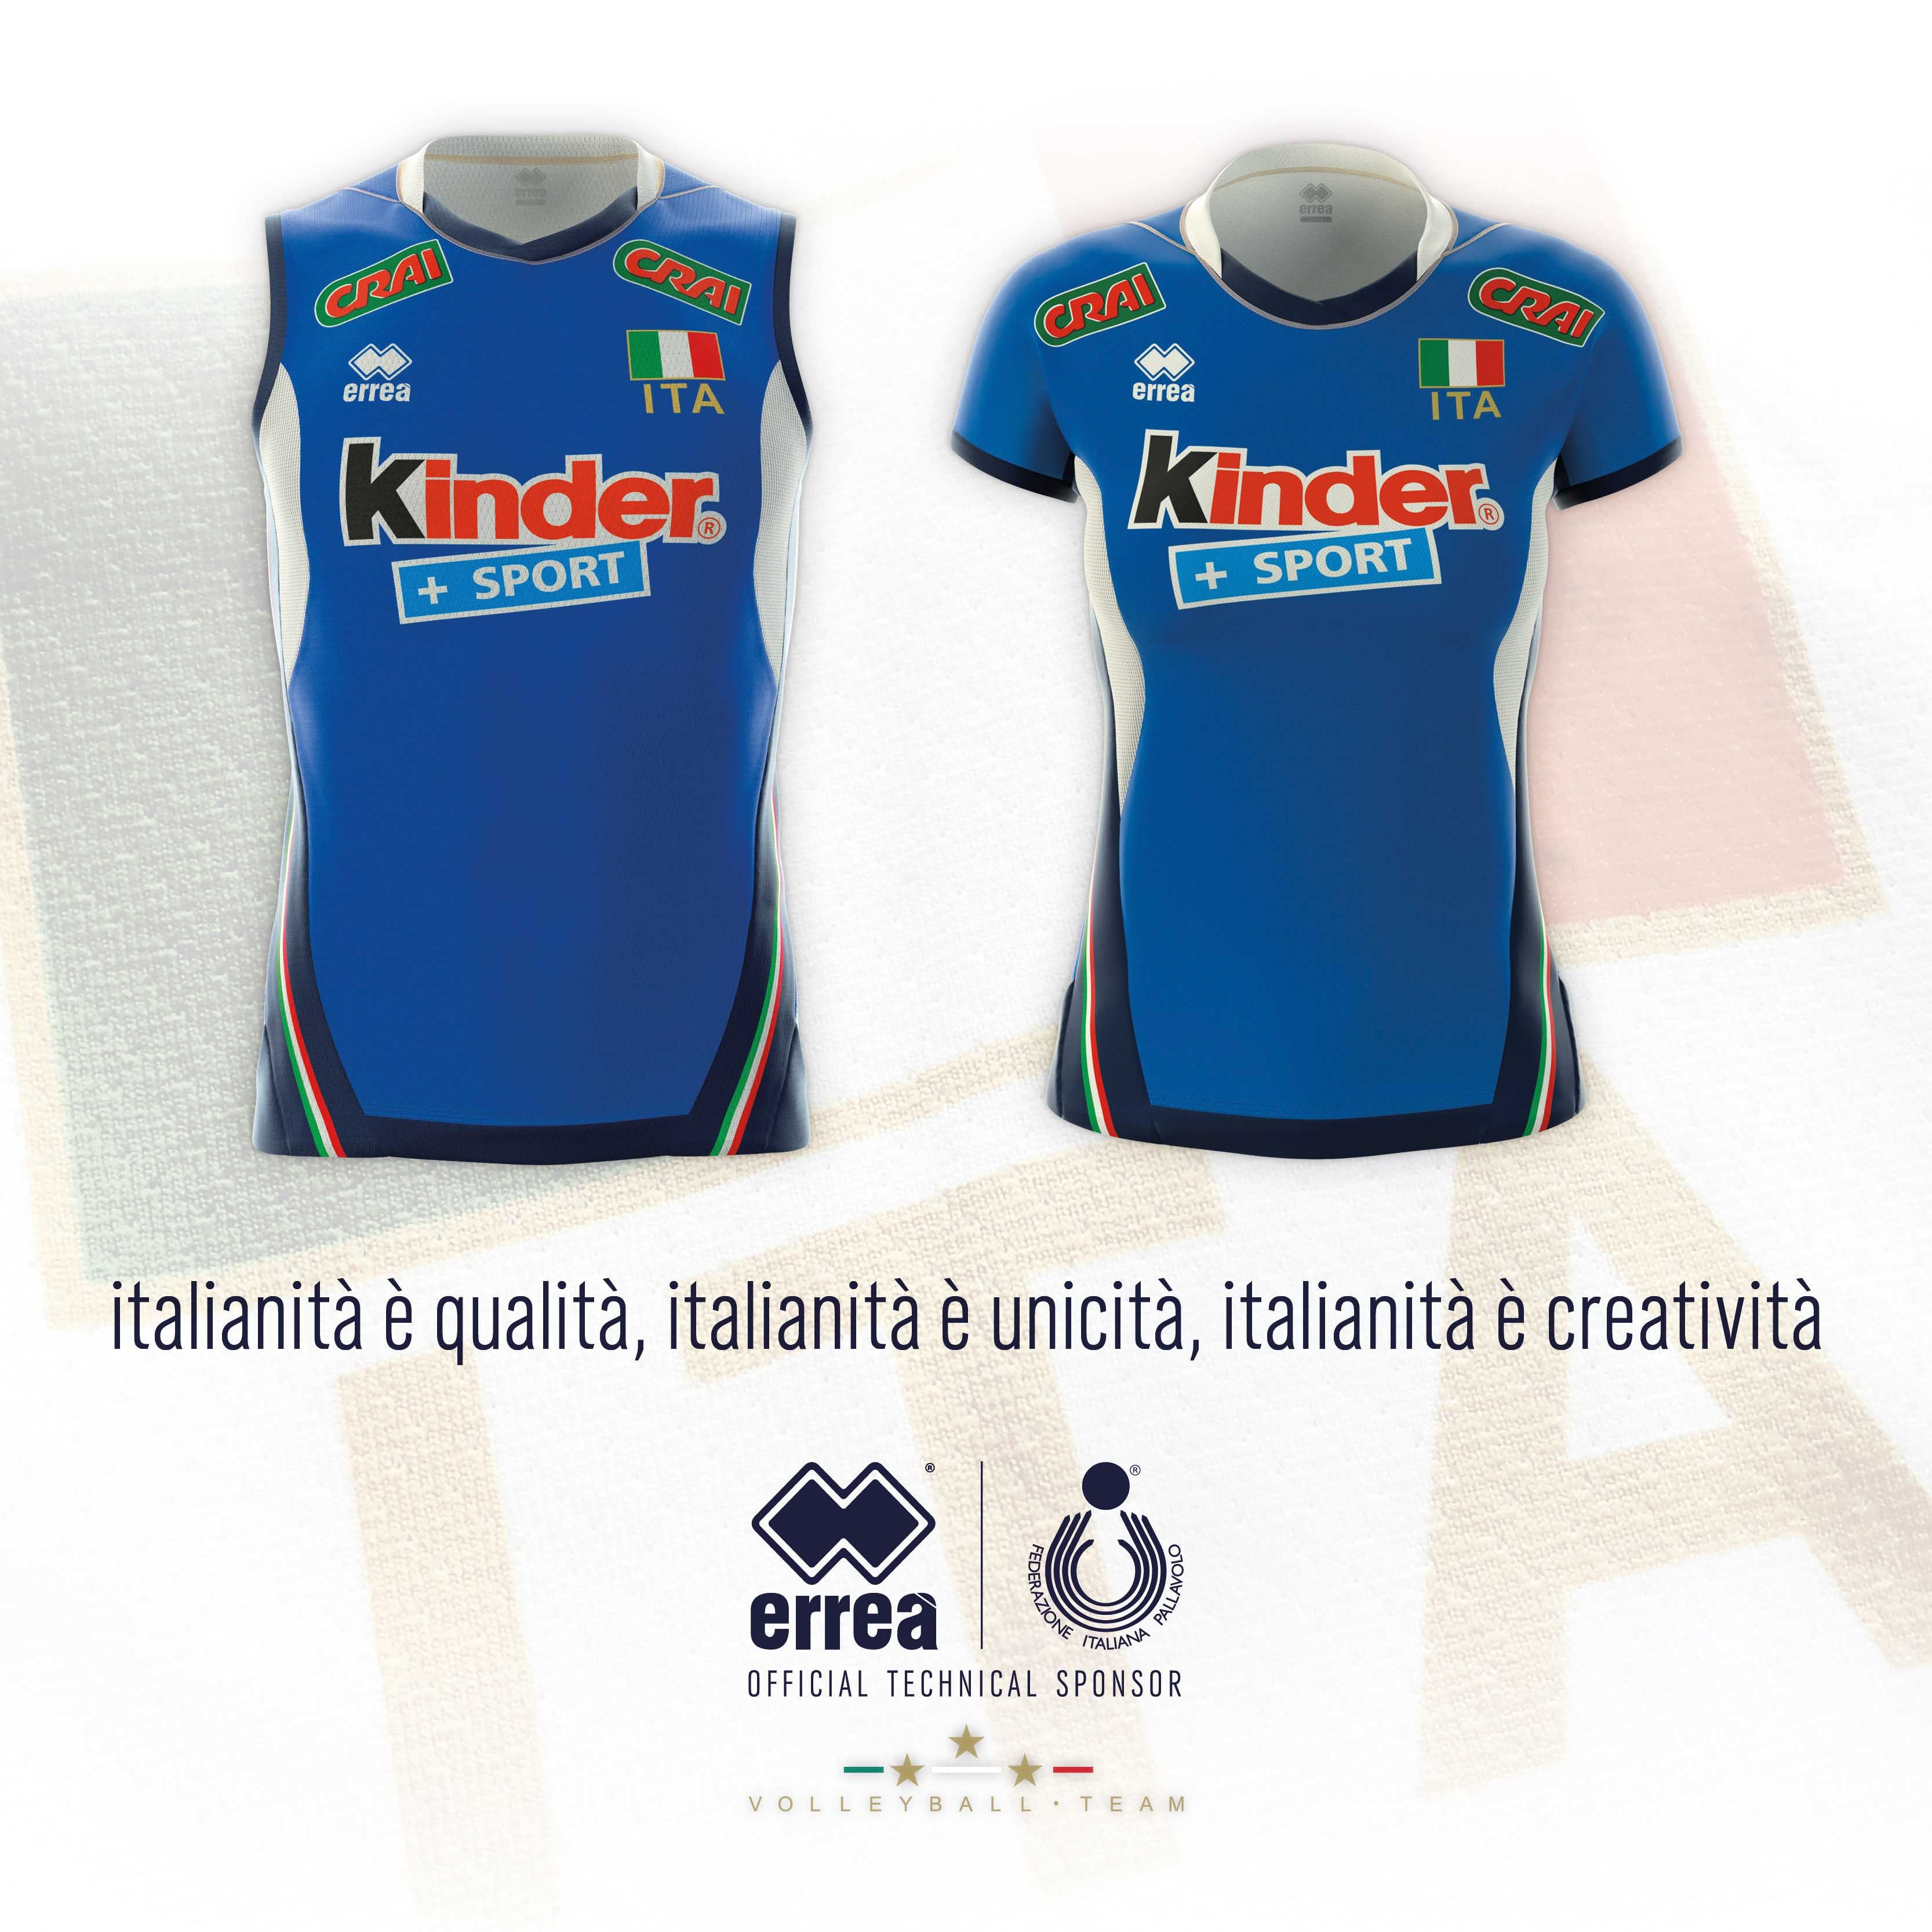 The new Erreà Sport kits for the Italian Volleyball team are unveiled!